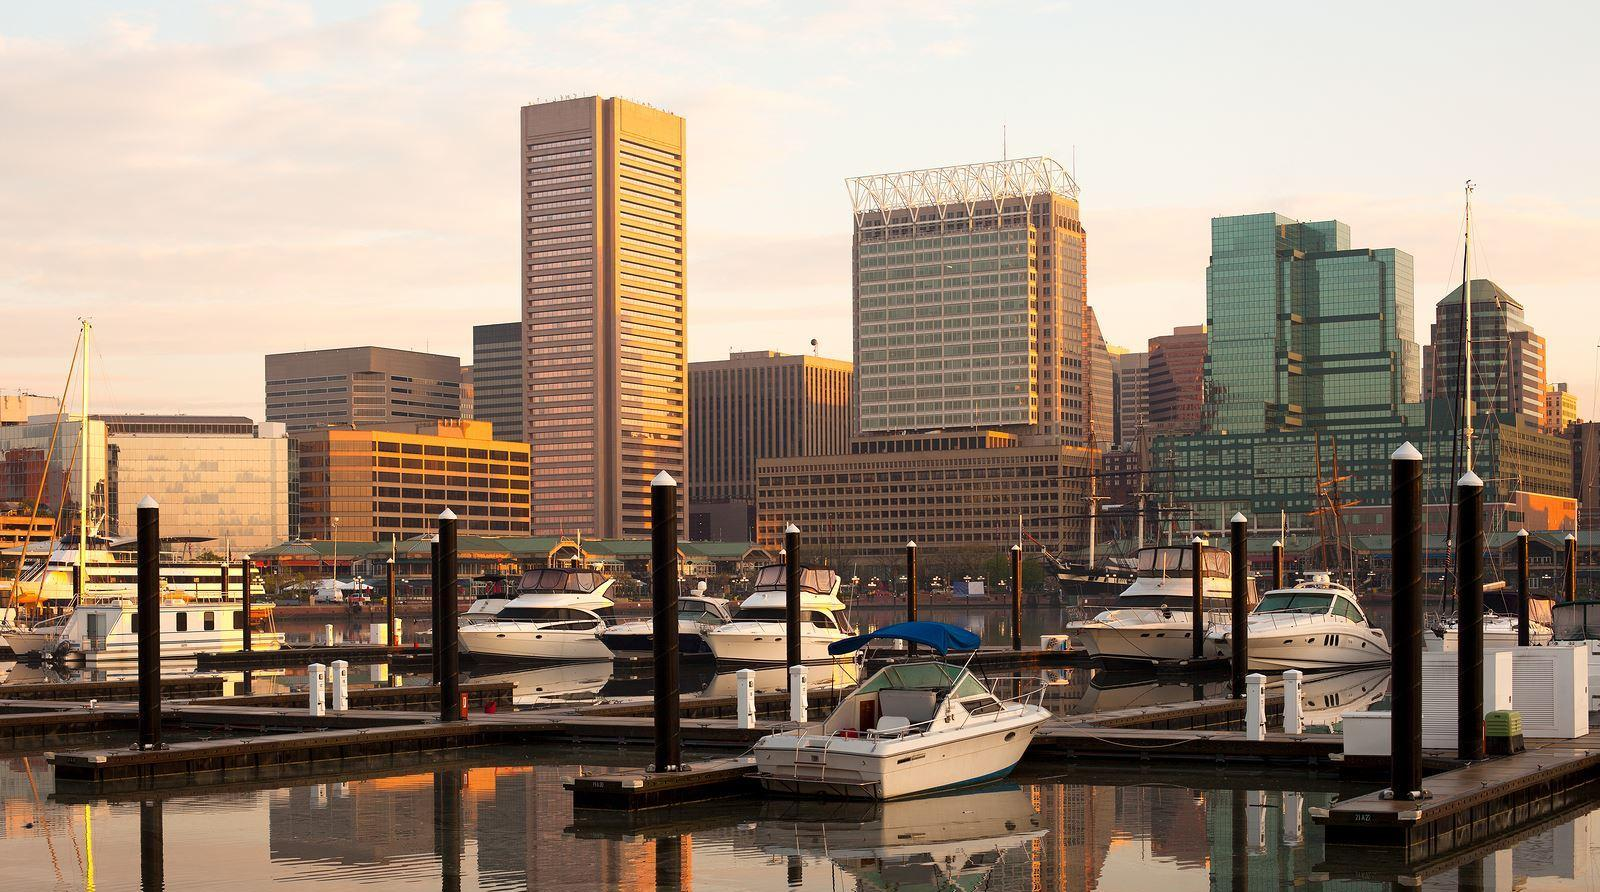 Baltimore Real Estate Market 2019: Why and Where to Invest | Mashvisor